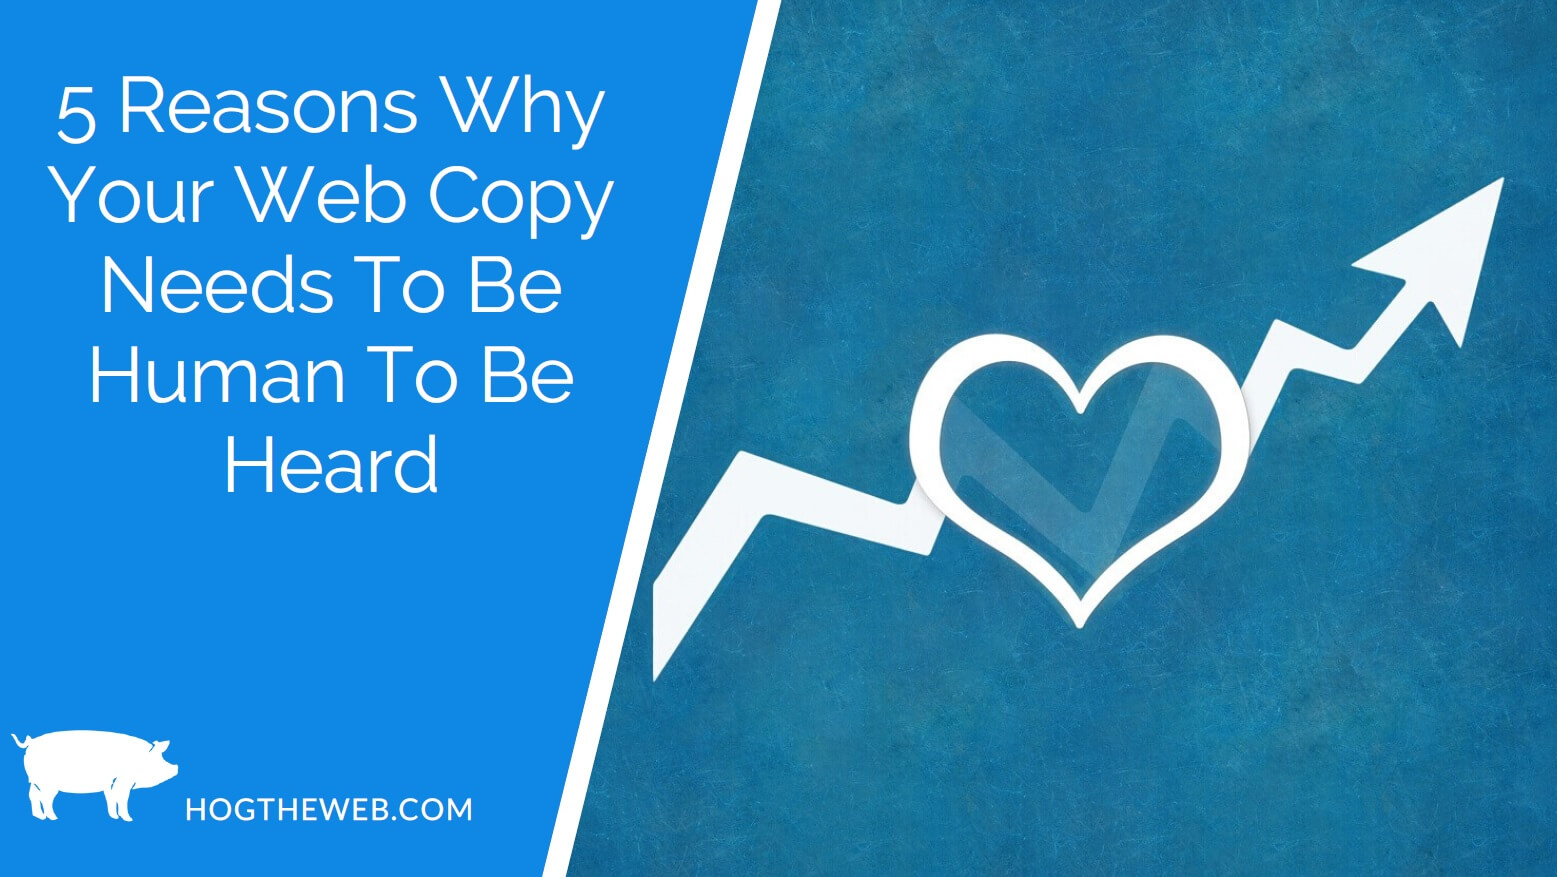 5 Reasons Why Your Web Copy Needs To Be Human To Be Heard